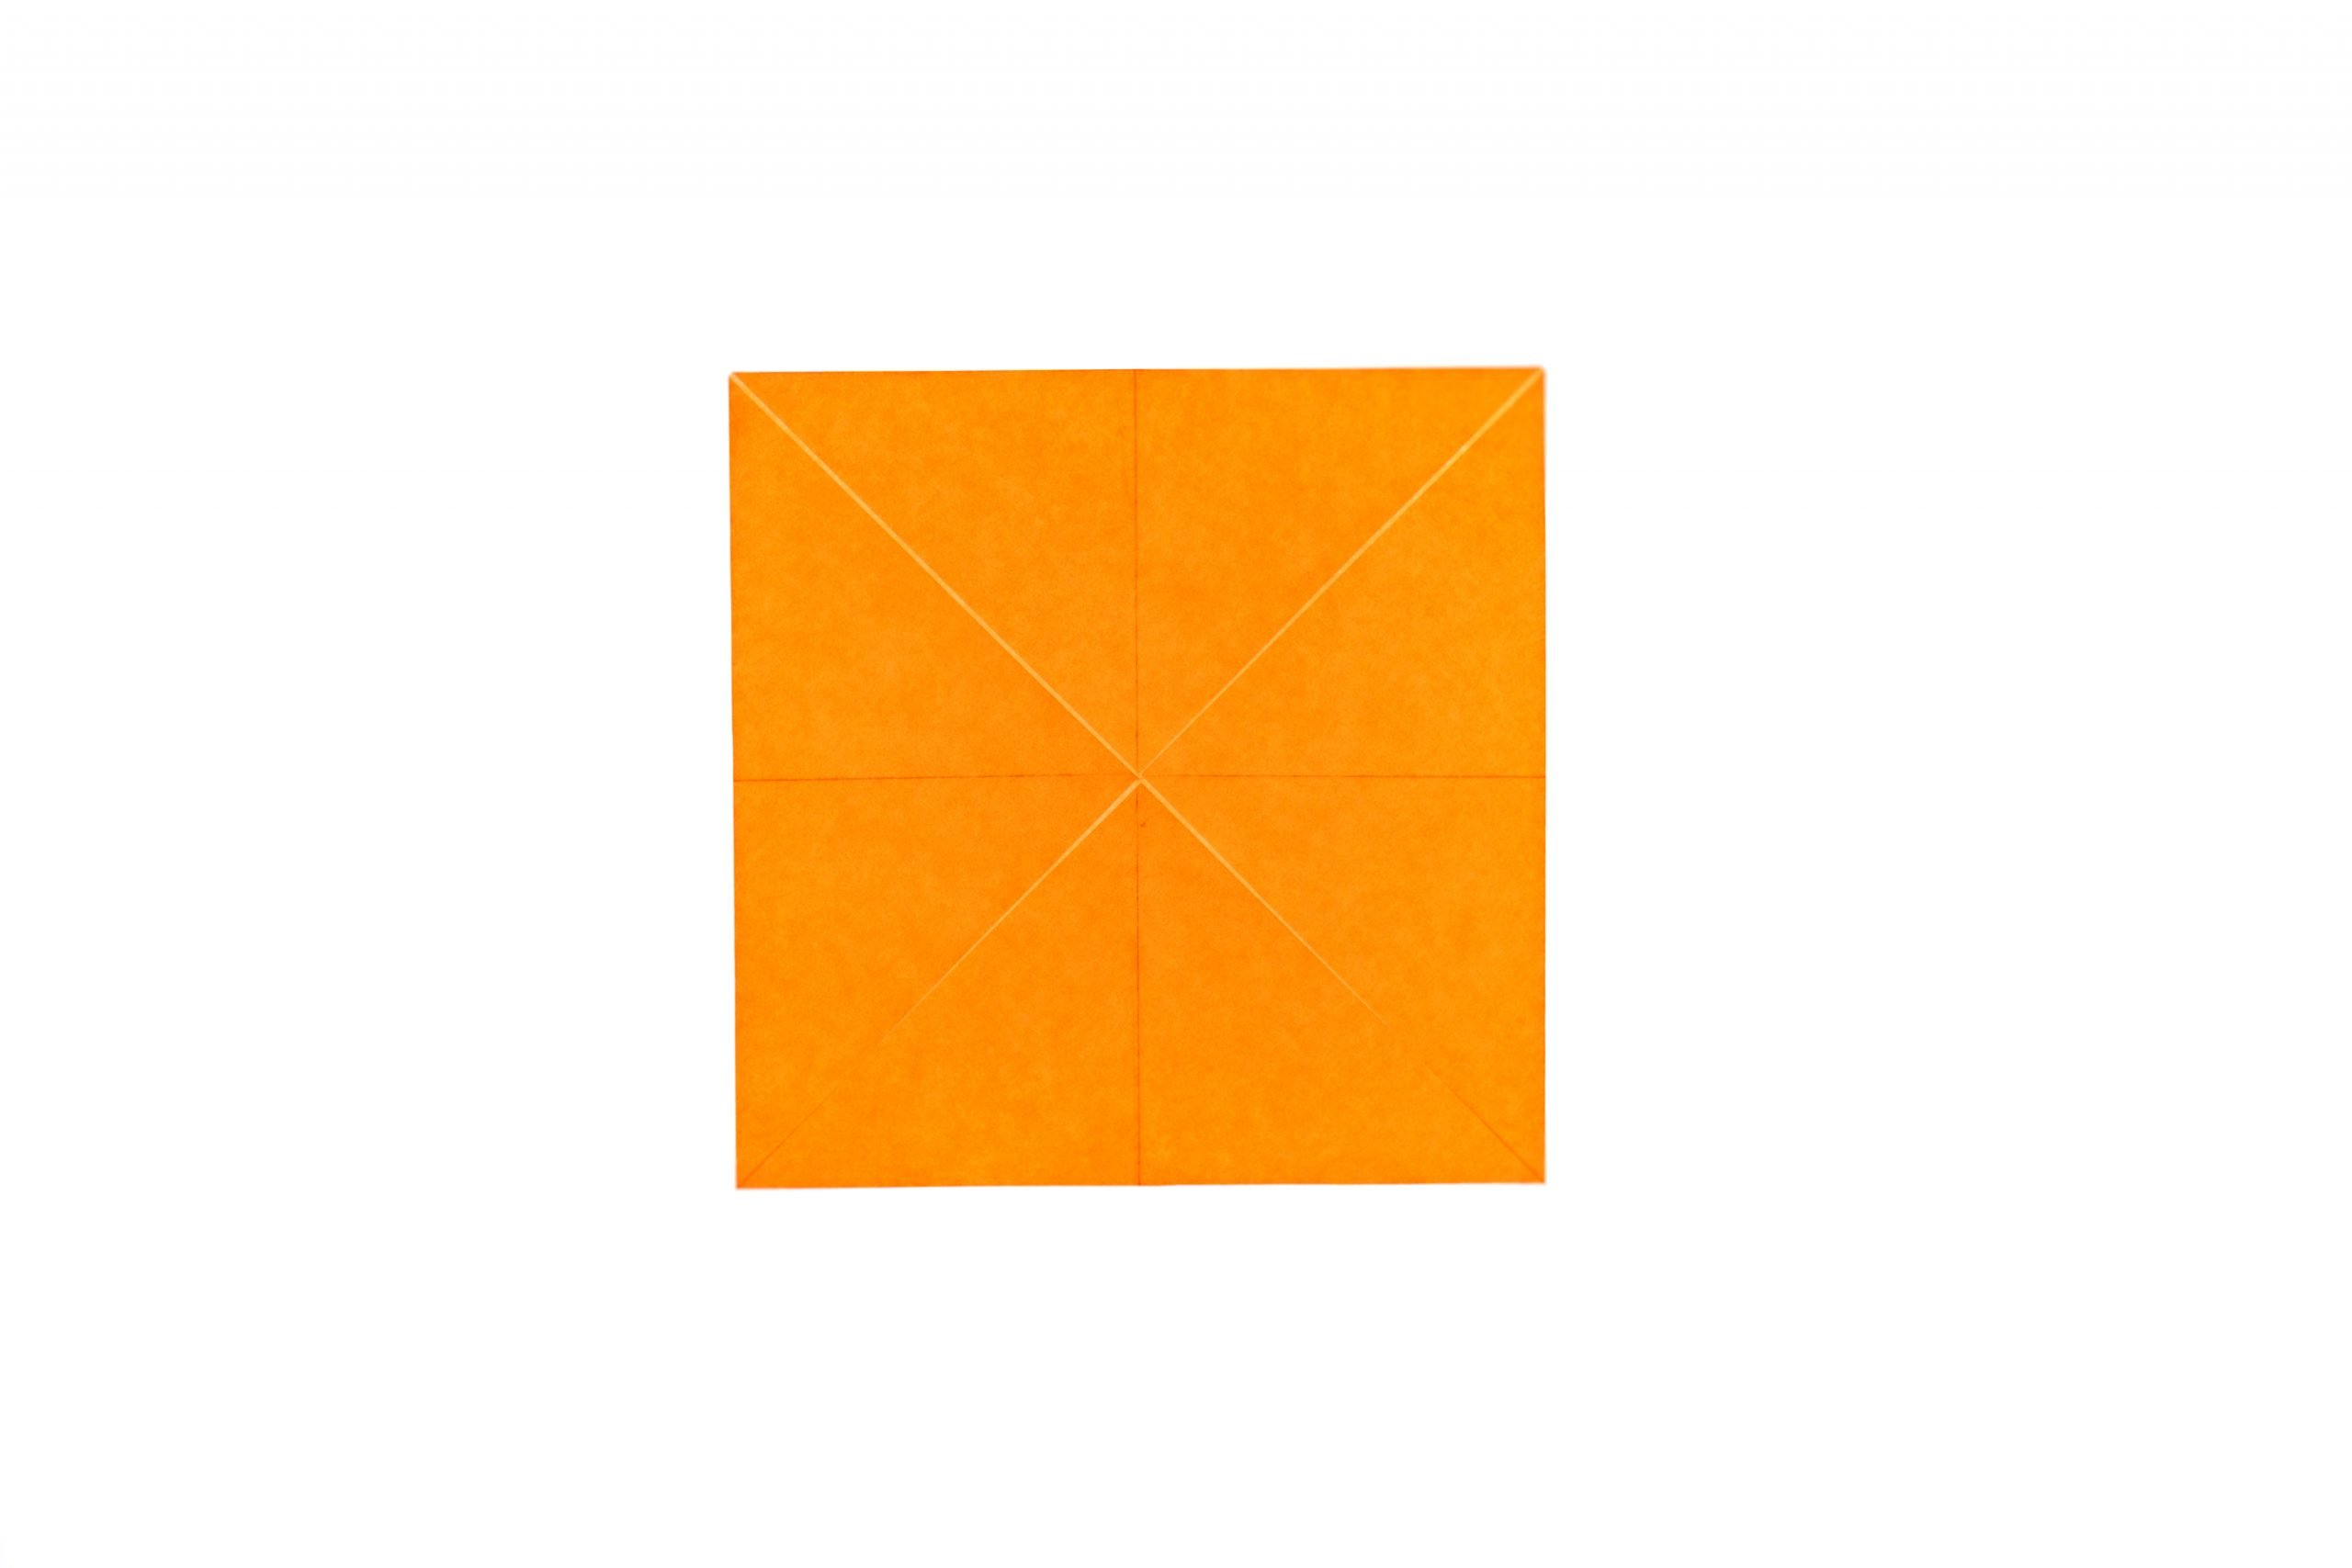 orange square of kite paper with corners folded in to the center